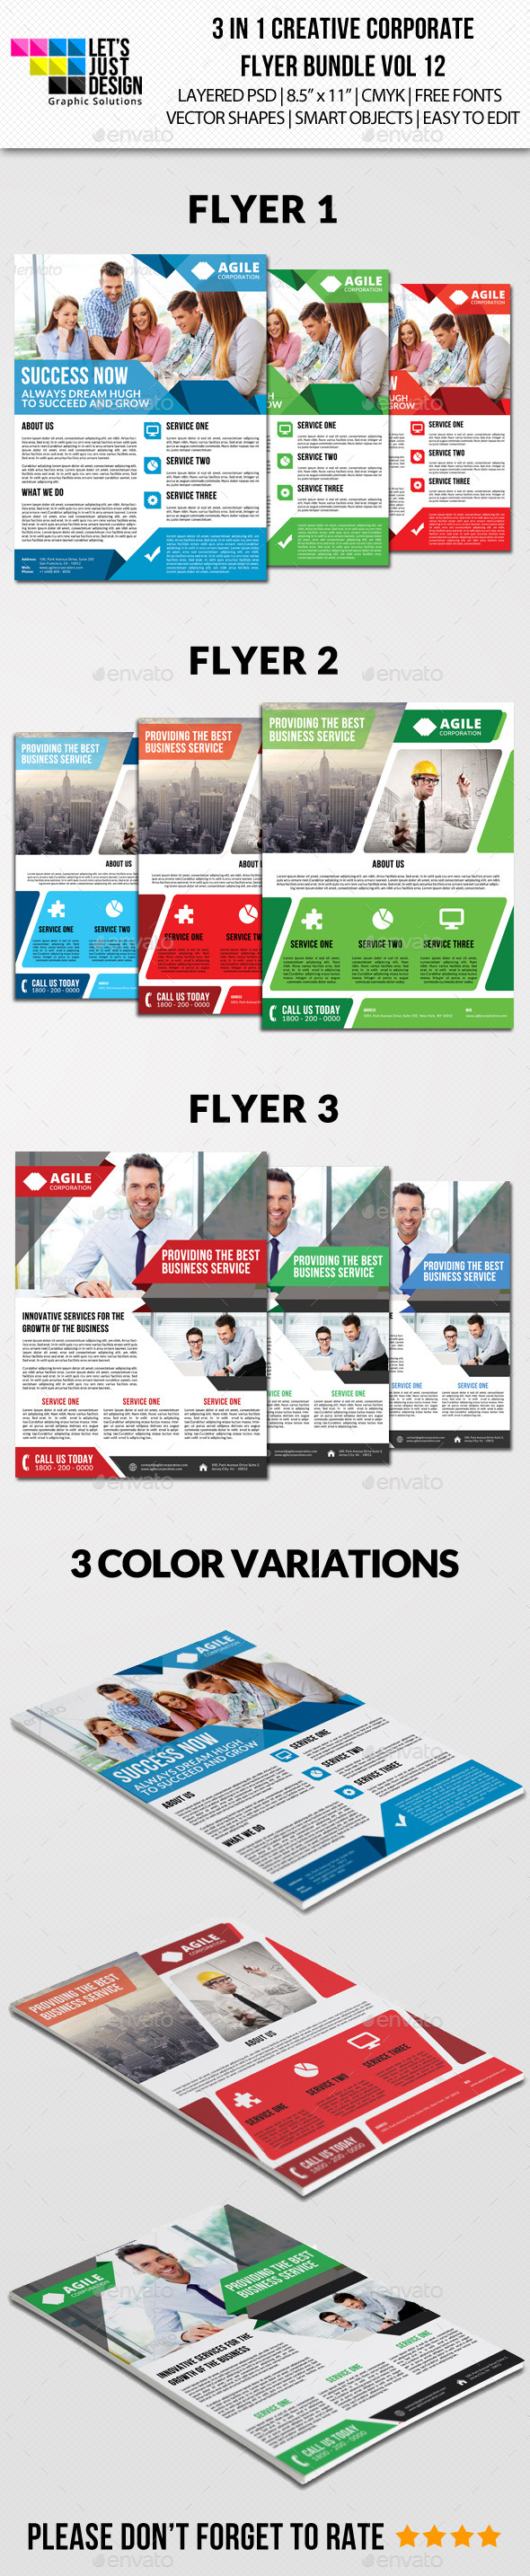 Creative Corporate Flyer Pack Vol 12 - Corporate Flyers